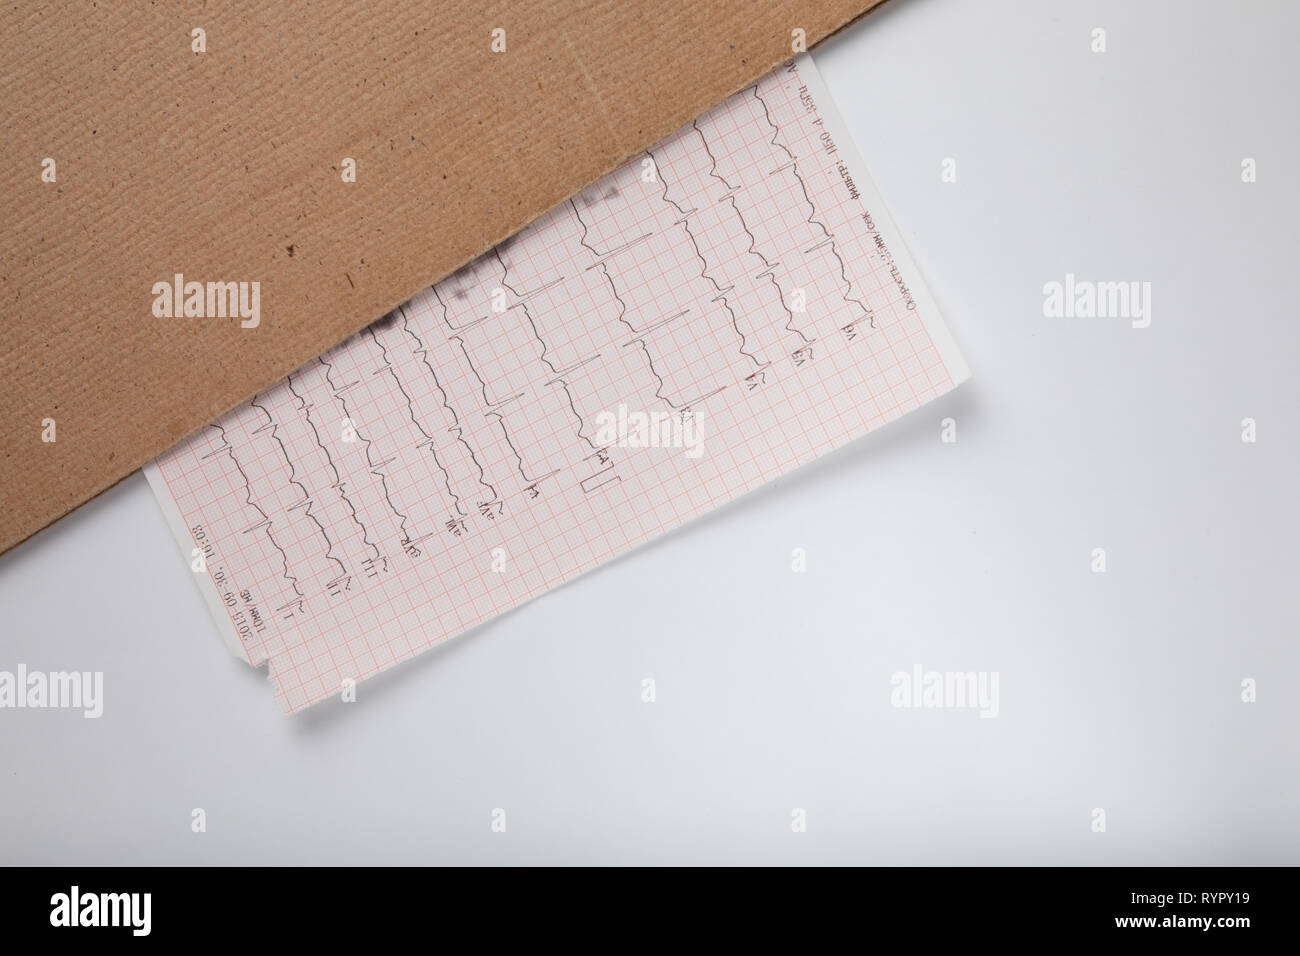 Medical records - EEG scan results - Human brain - brain waves - Stock Image